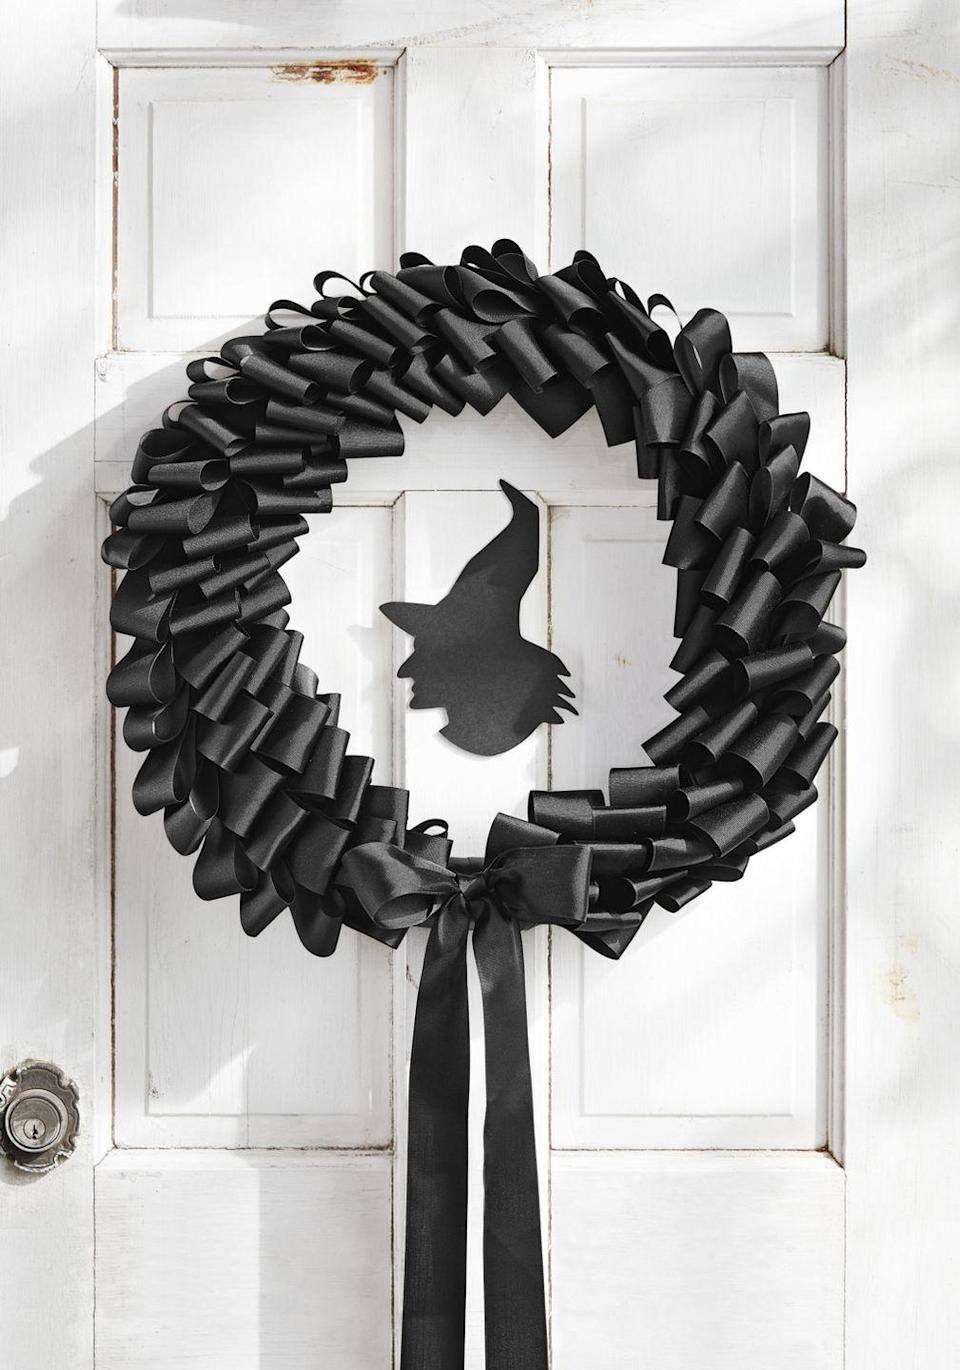 <p>We're spooked in the best way by this black wreath. A witch silhouette in the middle keeps it perfectly on-theme.</p><p><strong>Make the Wreath: </strong>Cut 150 6-inch-long strips of 2-inch-wide black grosgrain ribbon. Fold the strips in half and attach them to a 16-inch foam wreath form with straight pins, layering them on top of each other to create a ruffle effect. Cut out a silhouette of a witch from black kraft paper. Attach it to the center of a 16-inch round clear piece of acrylic with double-sided tape. Hot-glue the edges of the acrylic round to the back of the wreath form. Finish with a bow with long tails. </p>